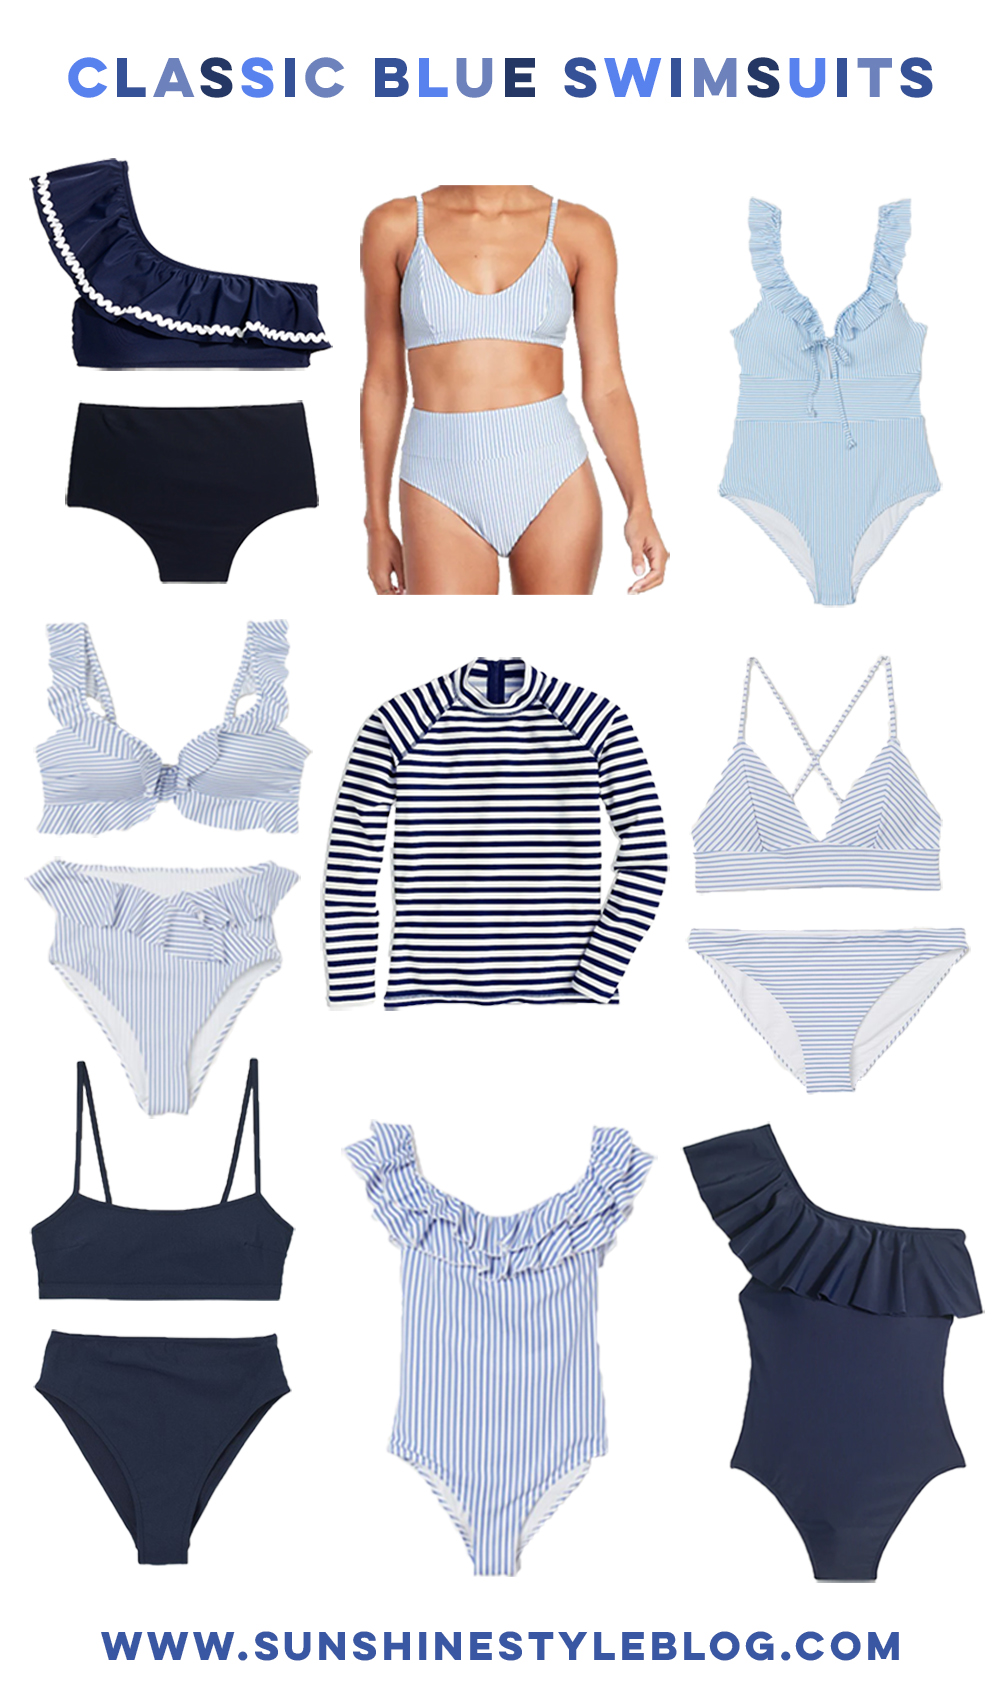 Classic Blue Summer Swimsuits / Classic Navy High Waist Swimsuit / Classic Striped One piece Swimsuit / Sunshine Style - A Florida Fashion and Lifestyle Blog